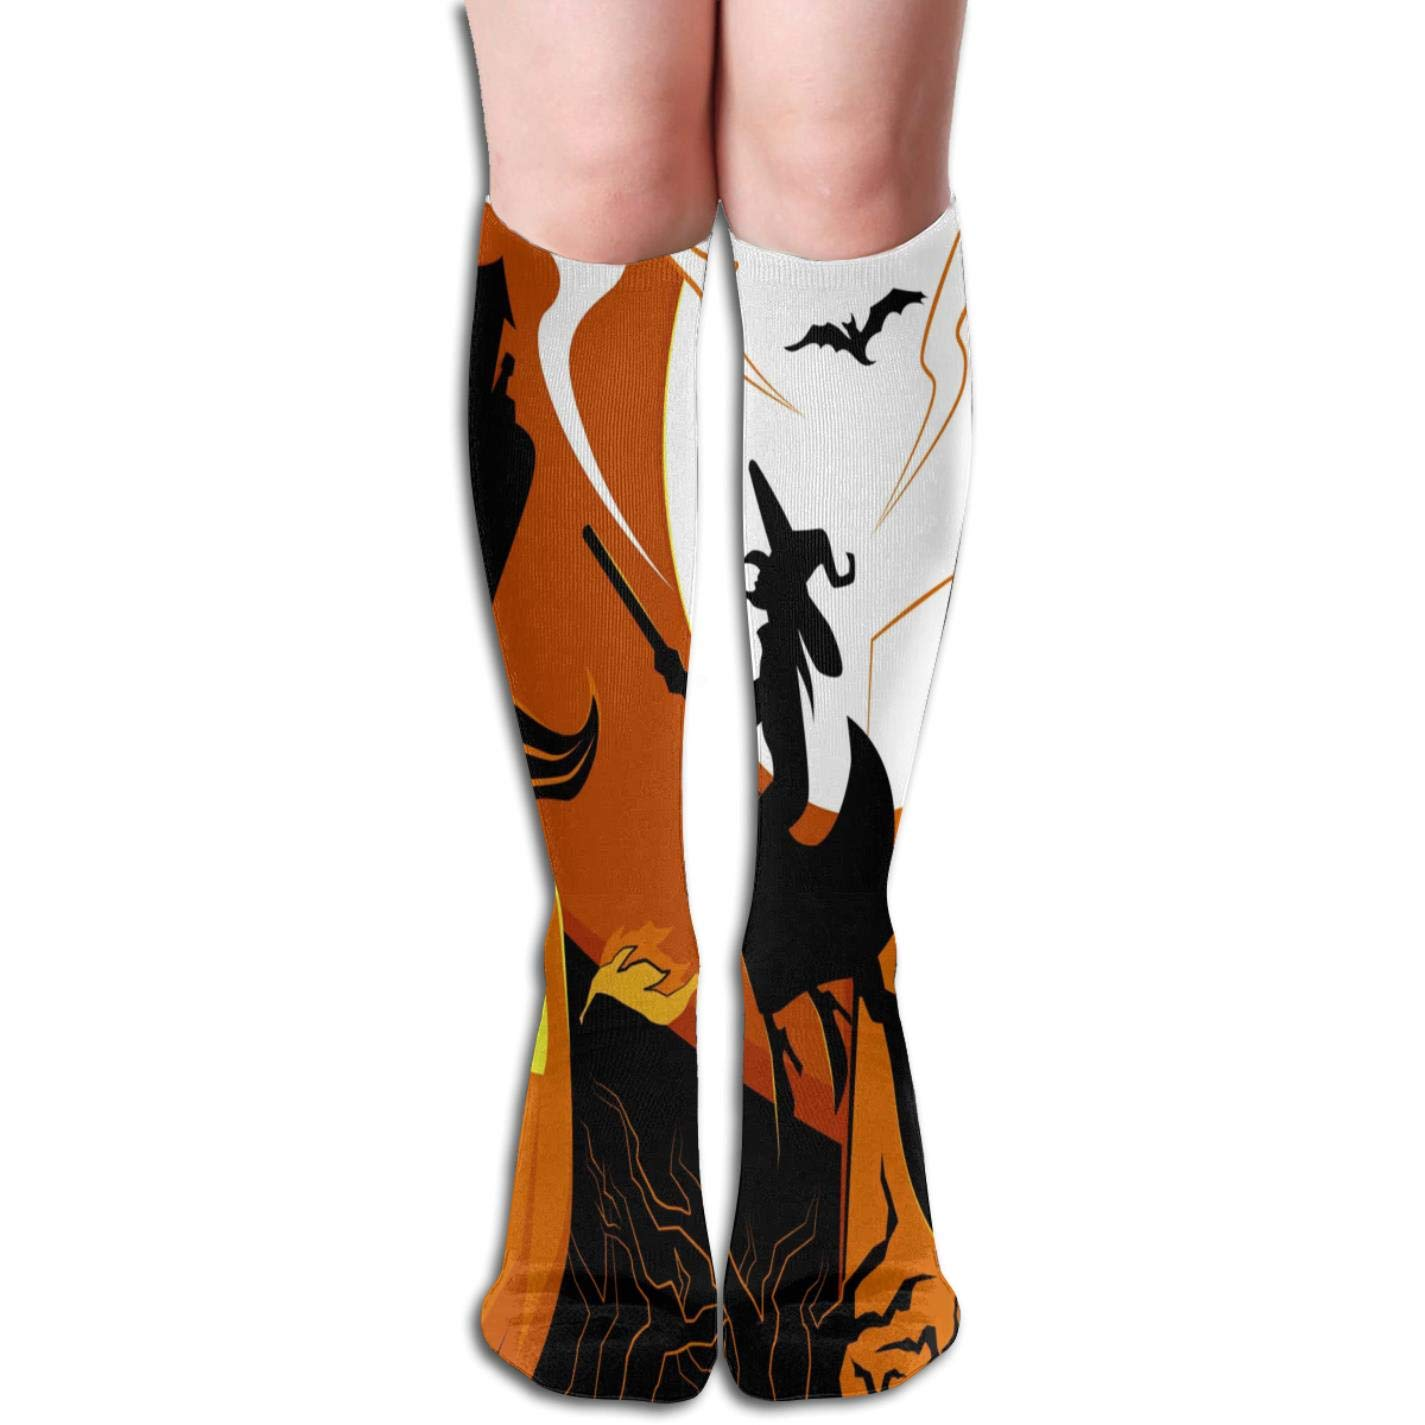 b3d3f6972 Amazon.com  Women s Halloween 3D Printing Kawaii Knee Socks Fashion Cute  Stockings  Clothing